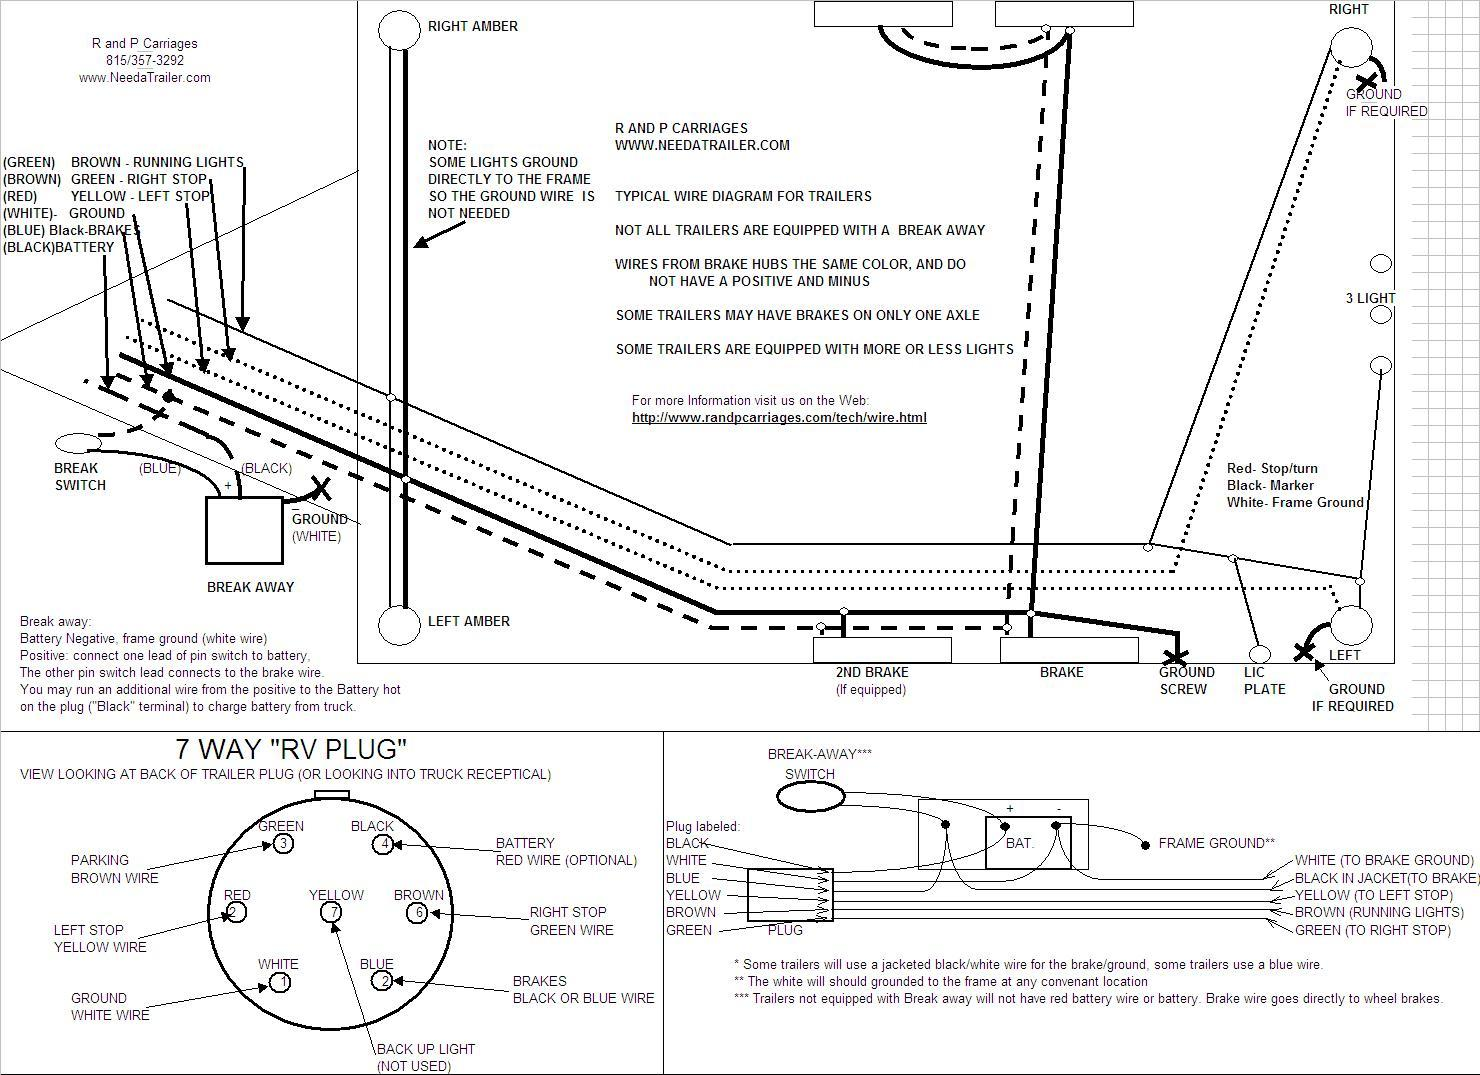 7 way wiring diagram brake controller installation instructions trailer wiring diagram 4 way at mifinder.co